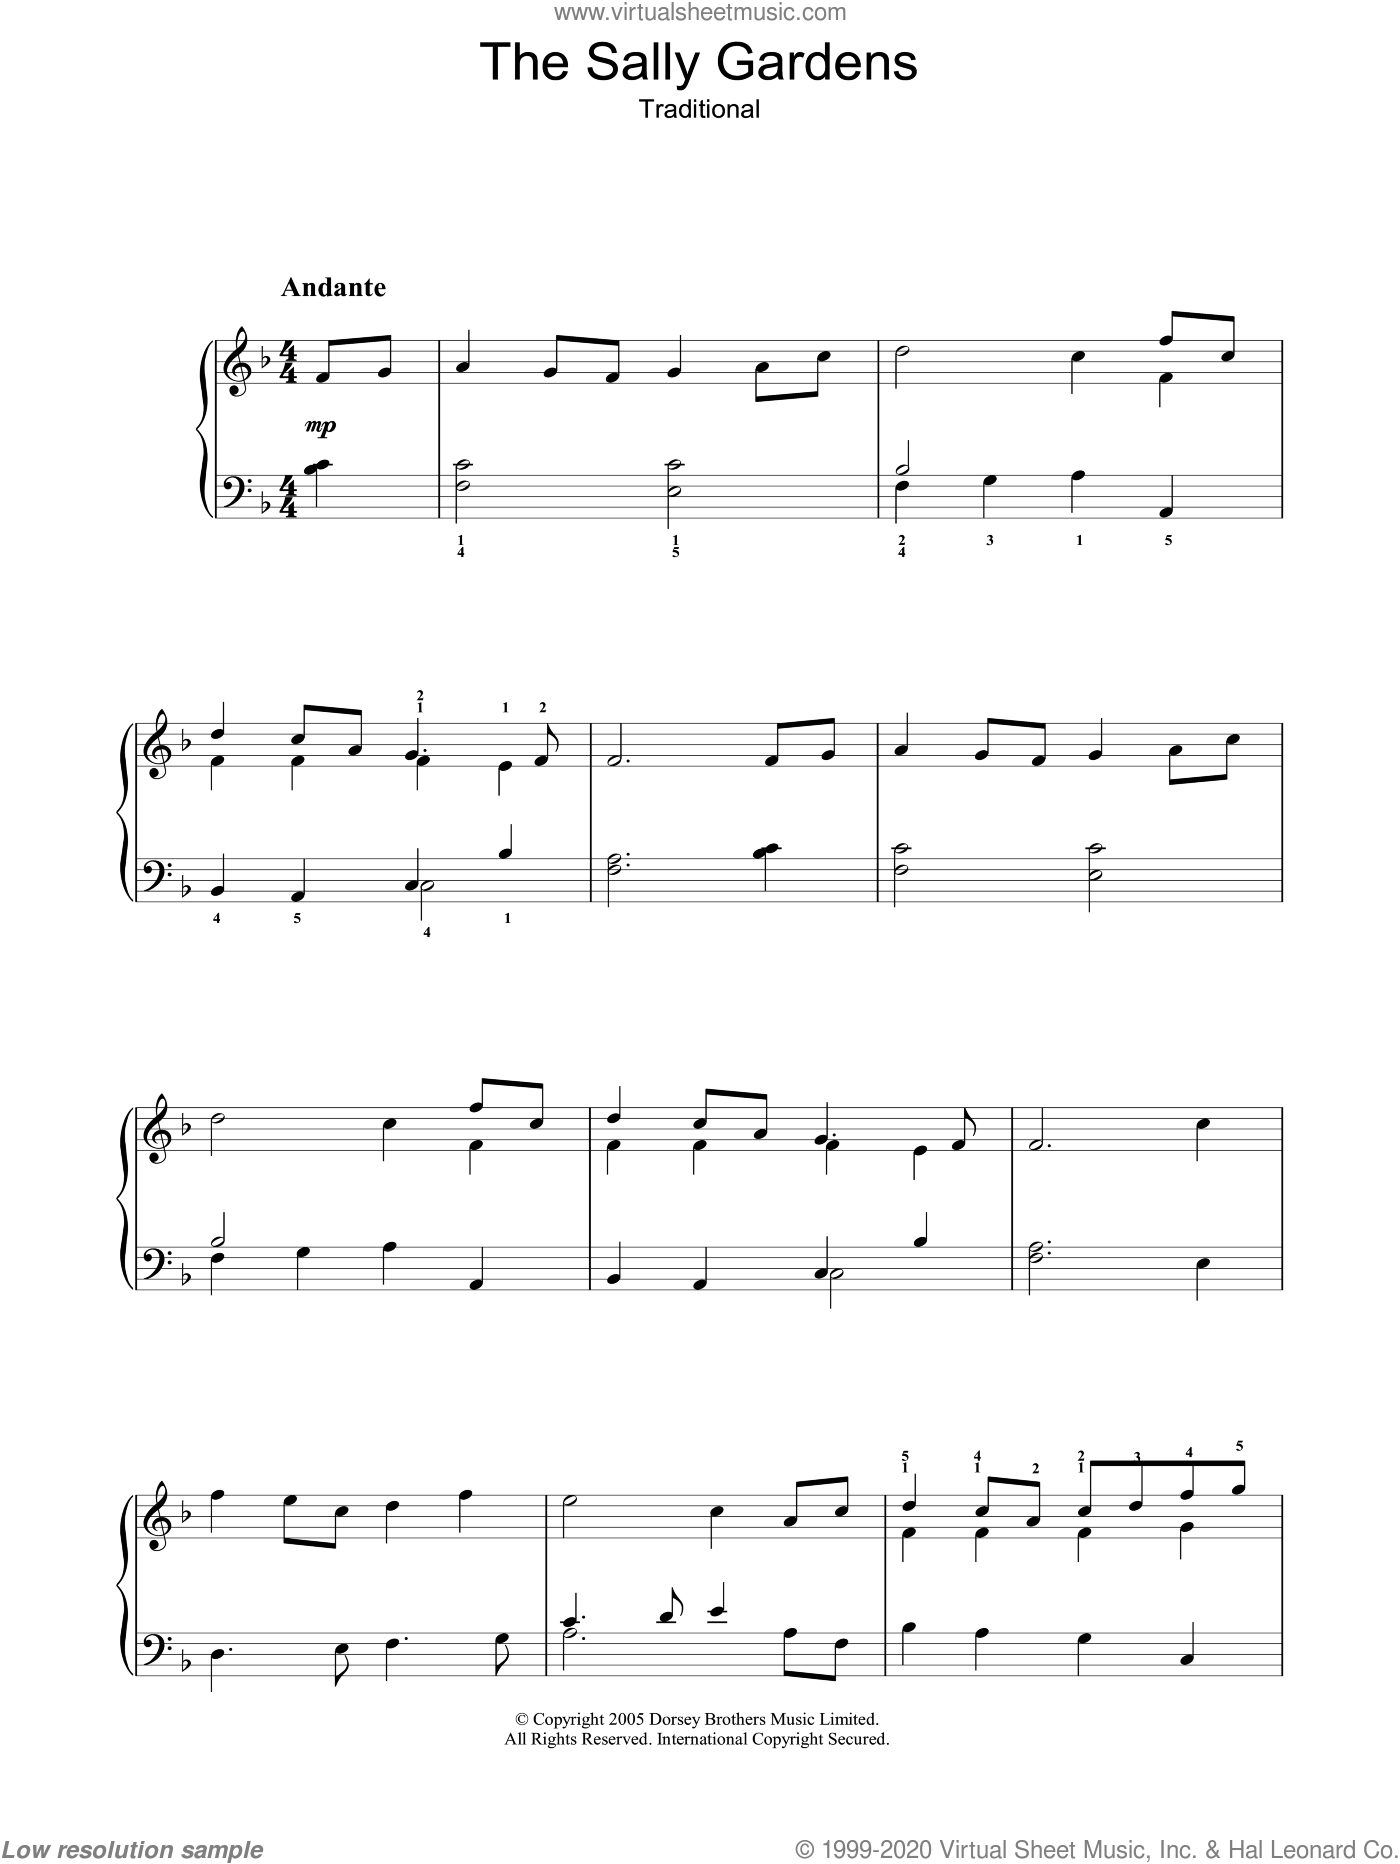 The Sally Gardens sheet music for voice, piano or guitar, intermediate skill level